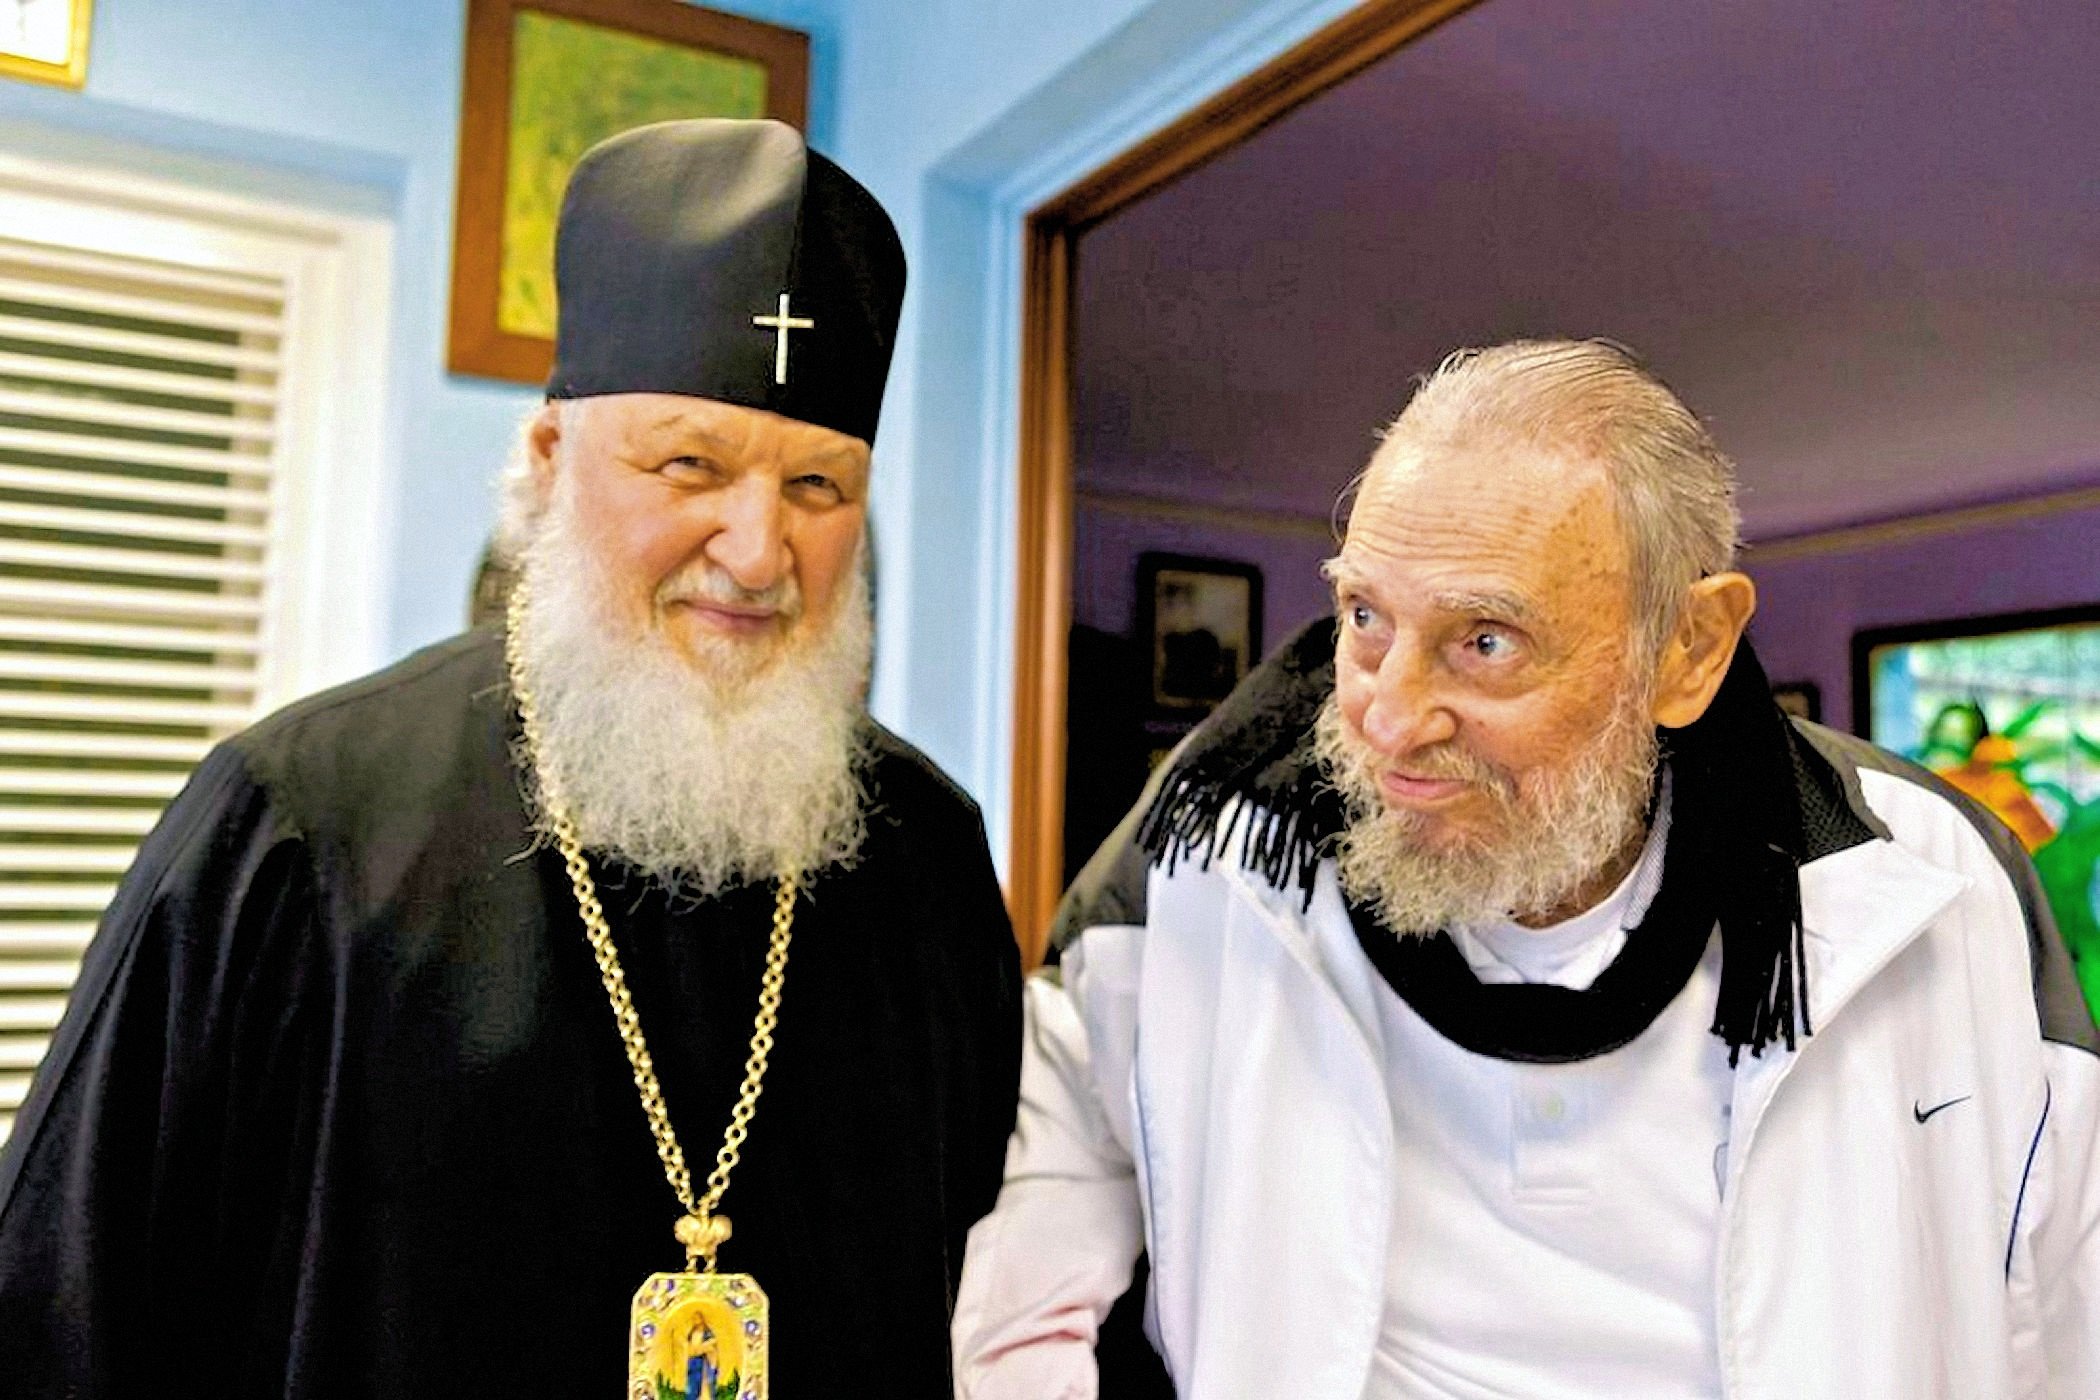 00 fidel and patr kirill 120816